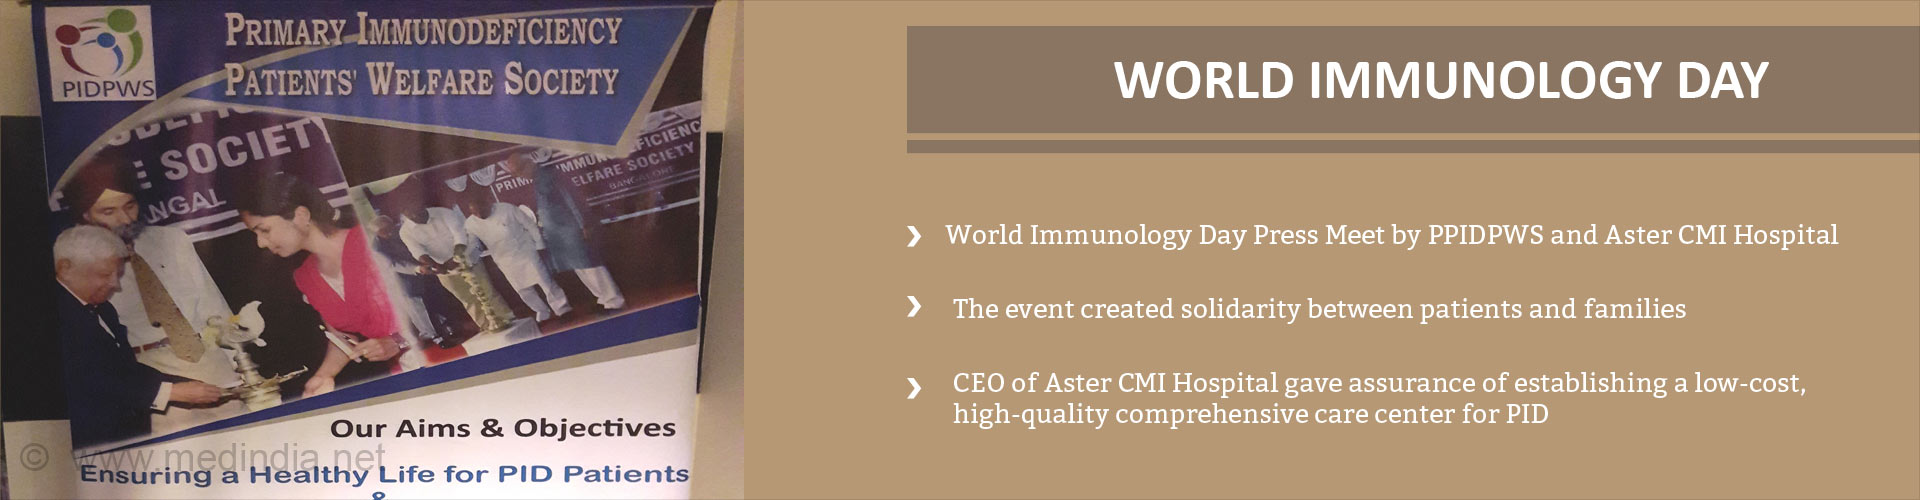 World Immunology Day 2017